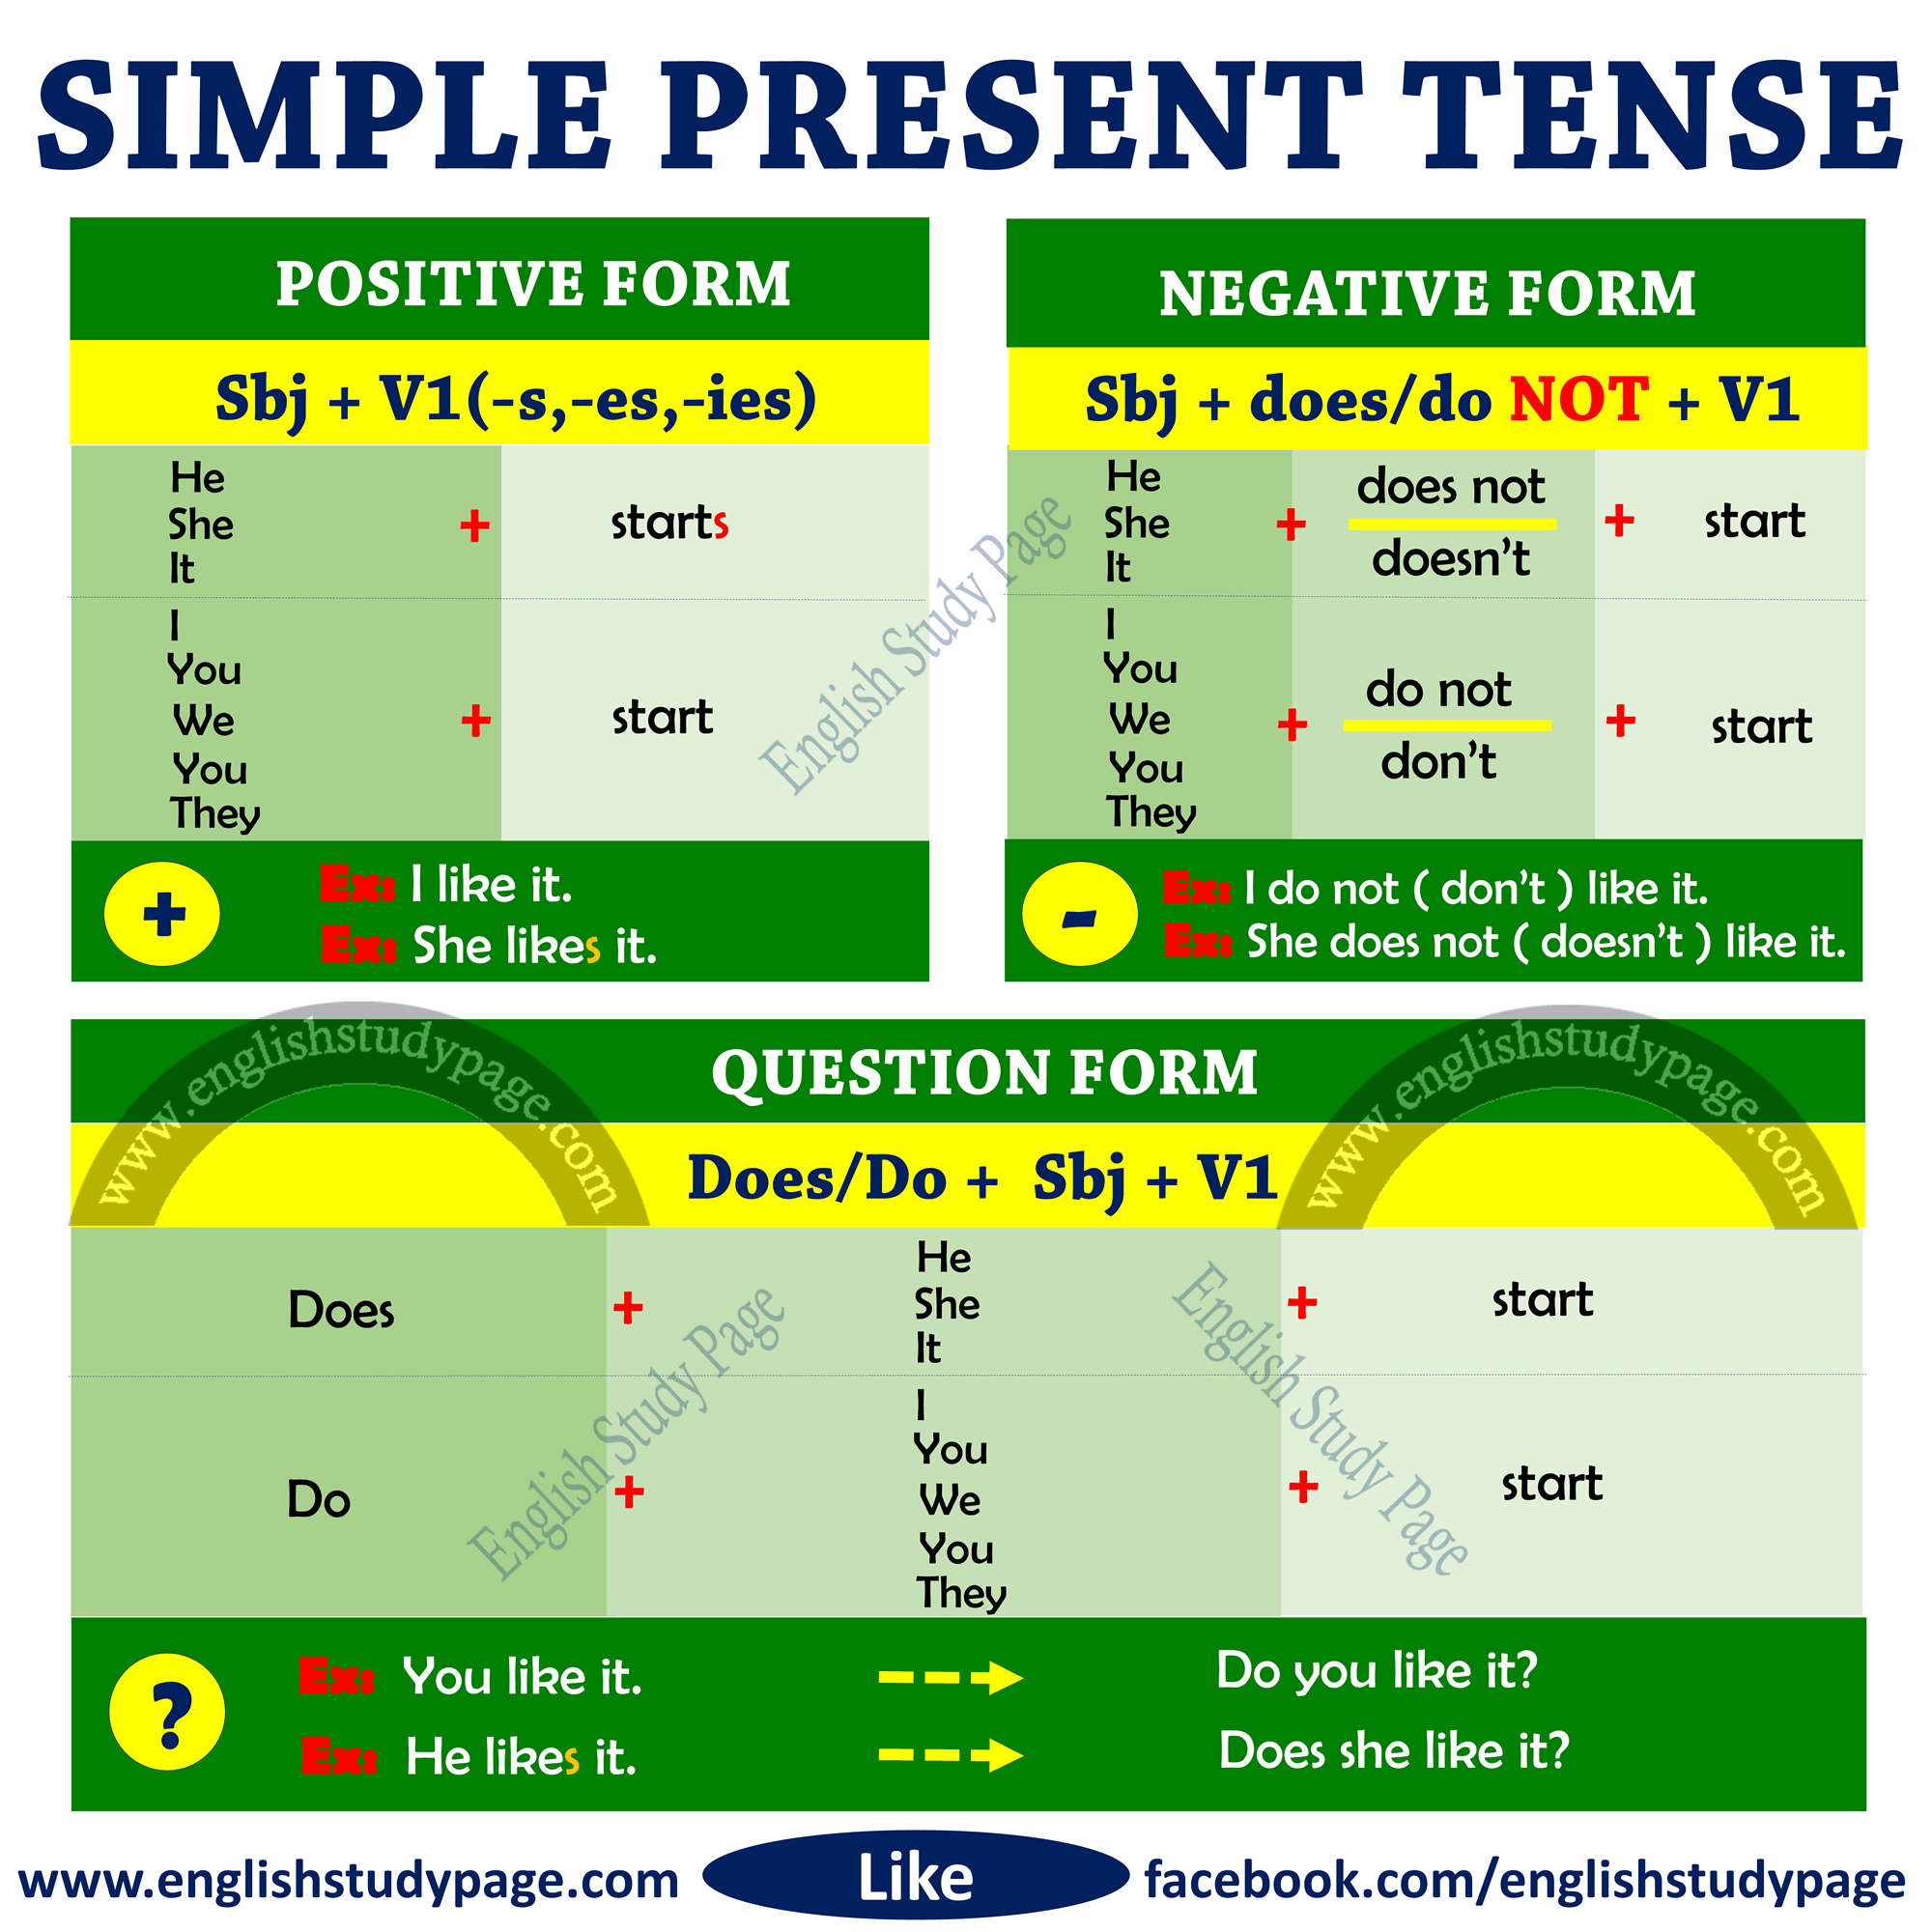 Structure Of Simple Present Tense